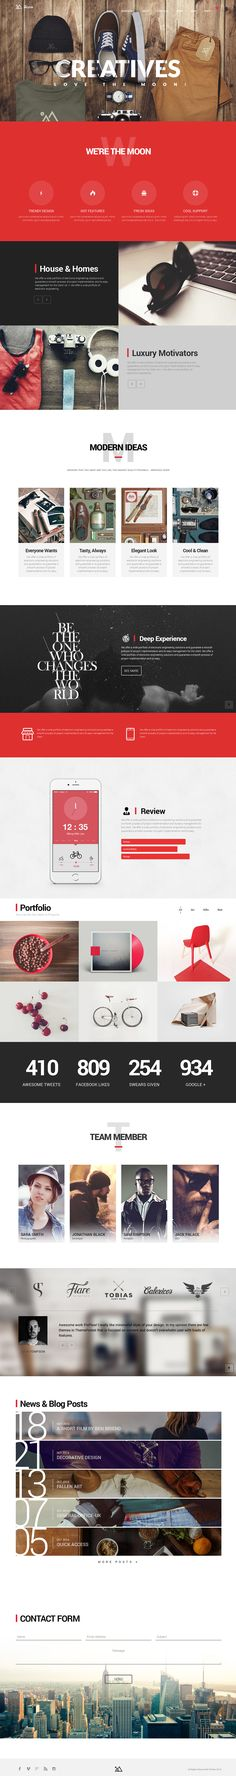 The Moon - Creative One Page Multi-Purpose Theme on Behance